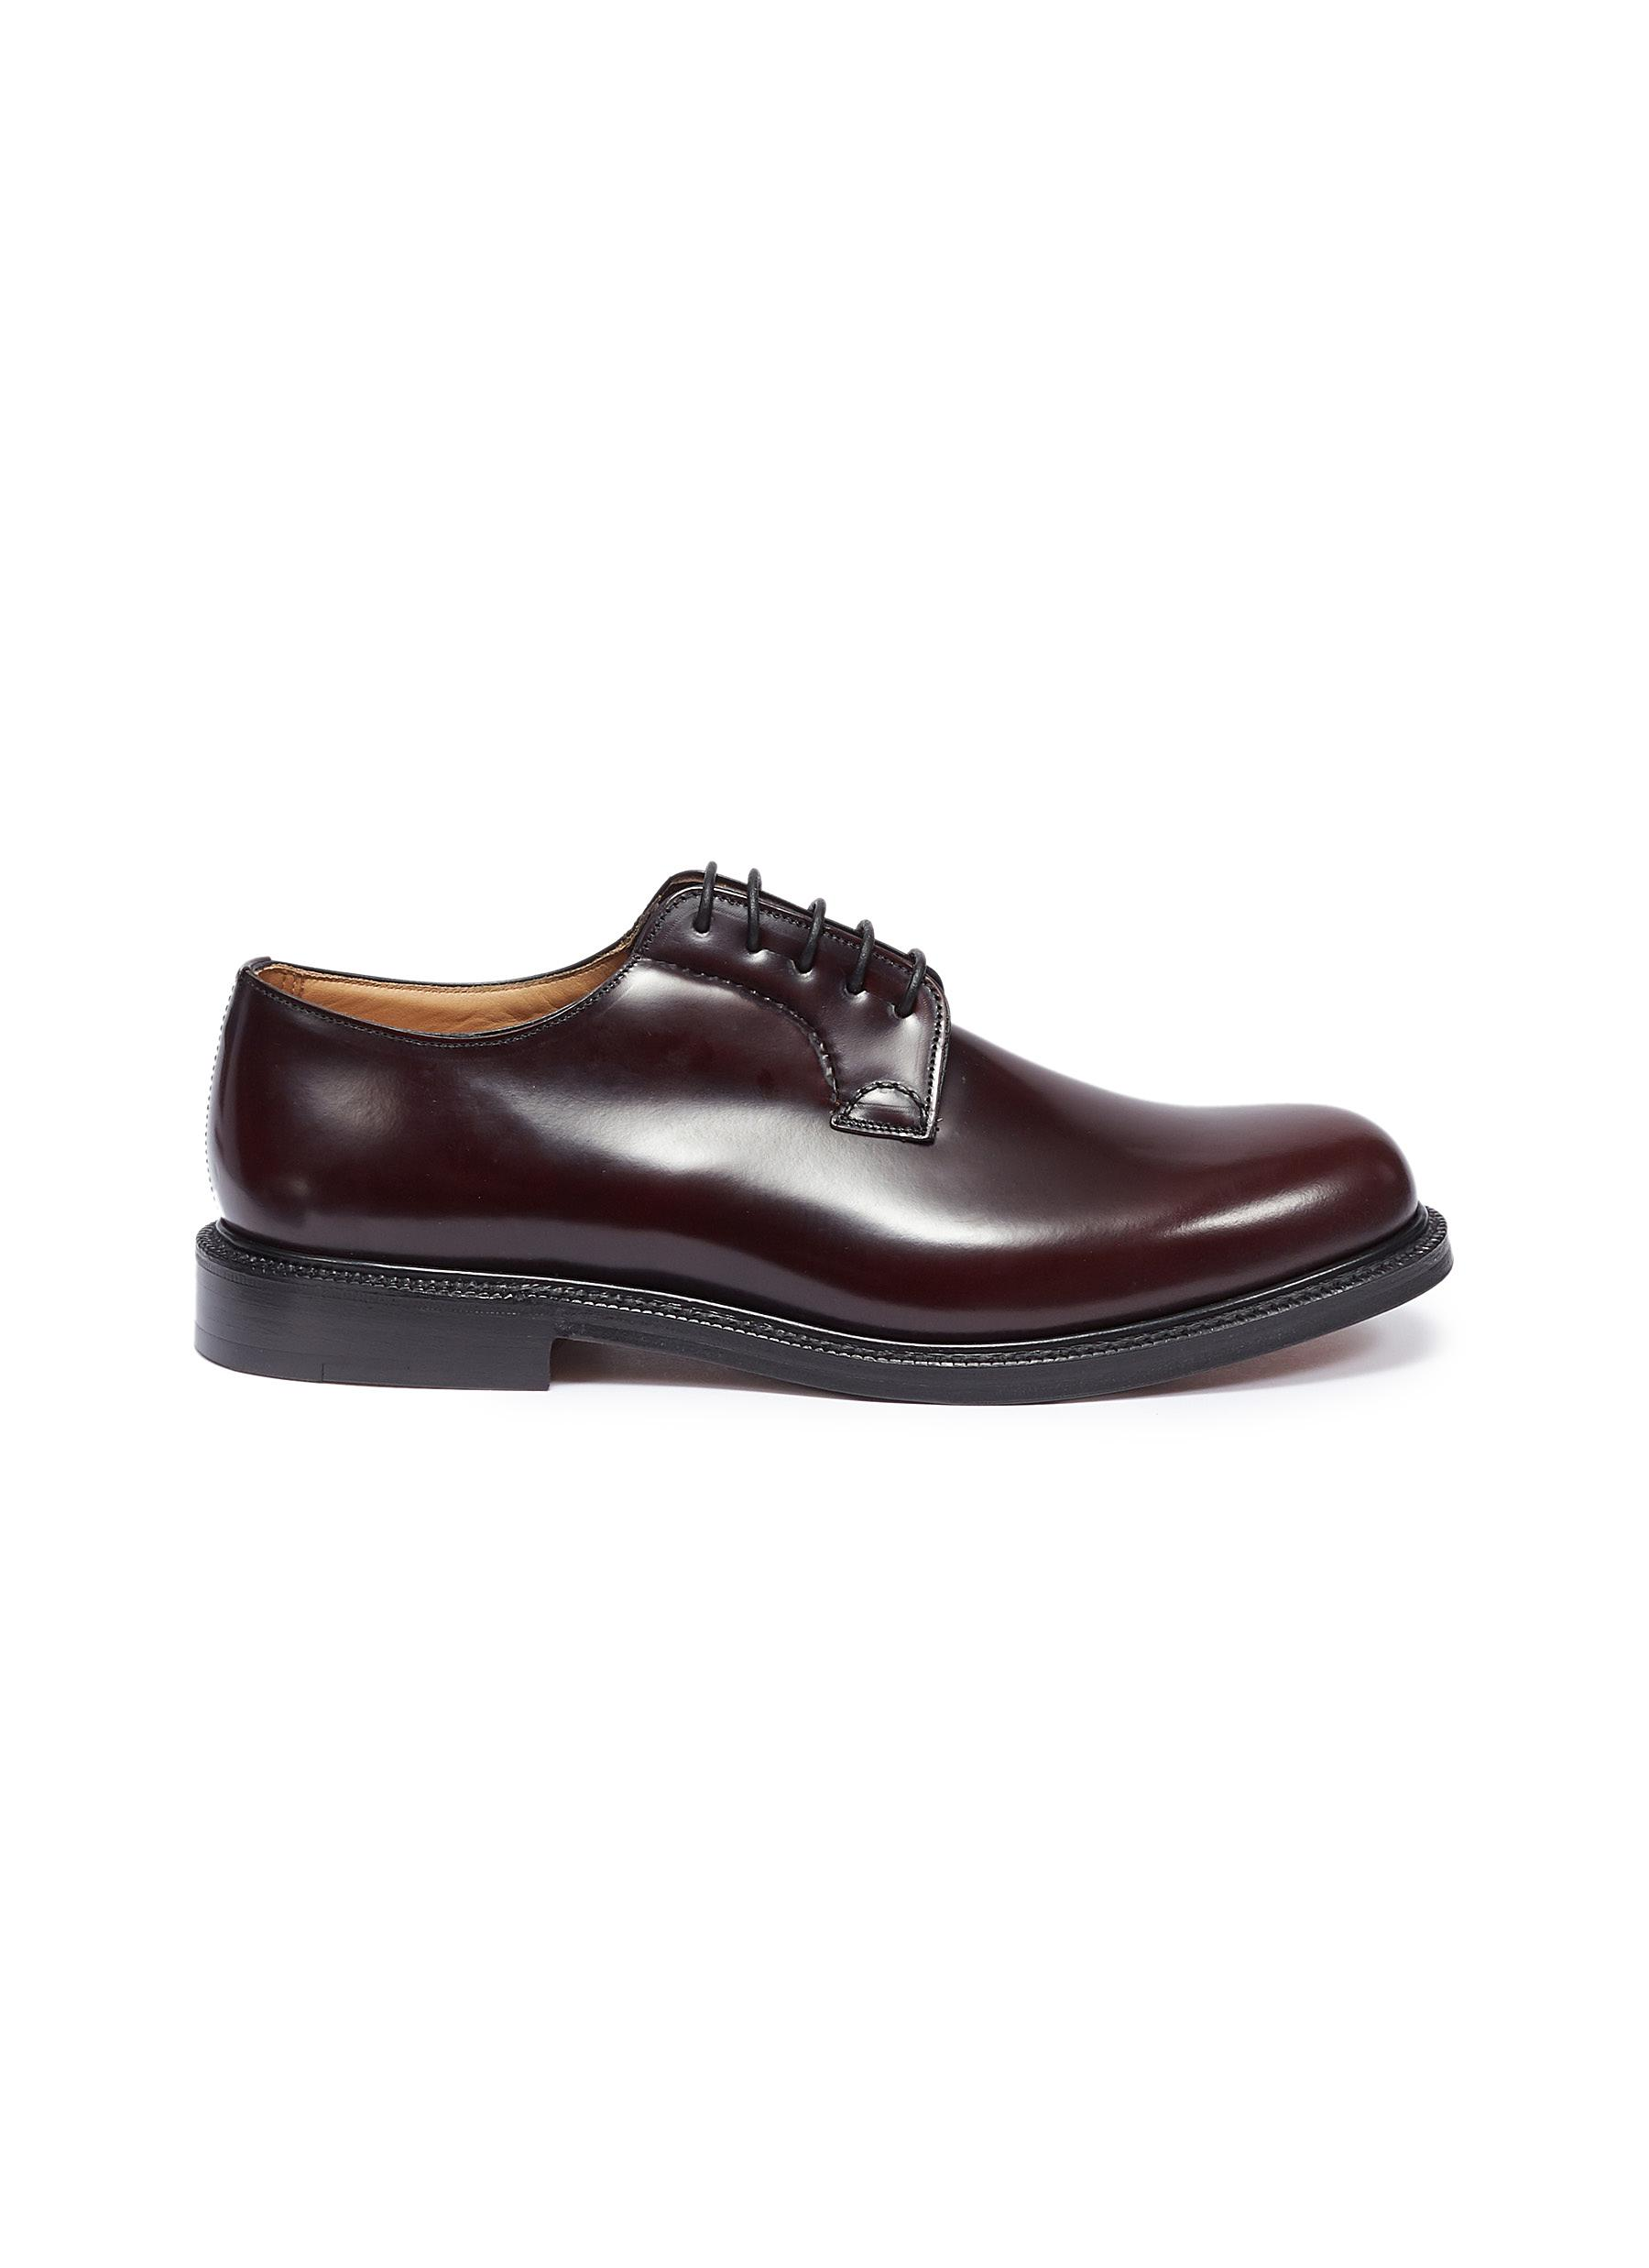 Church's 'Shannon' Leather Derbies In Burgundy